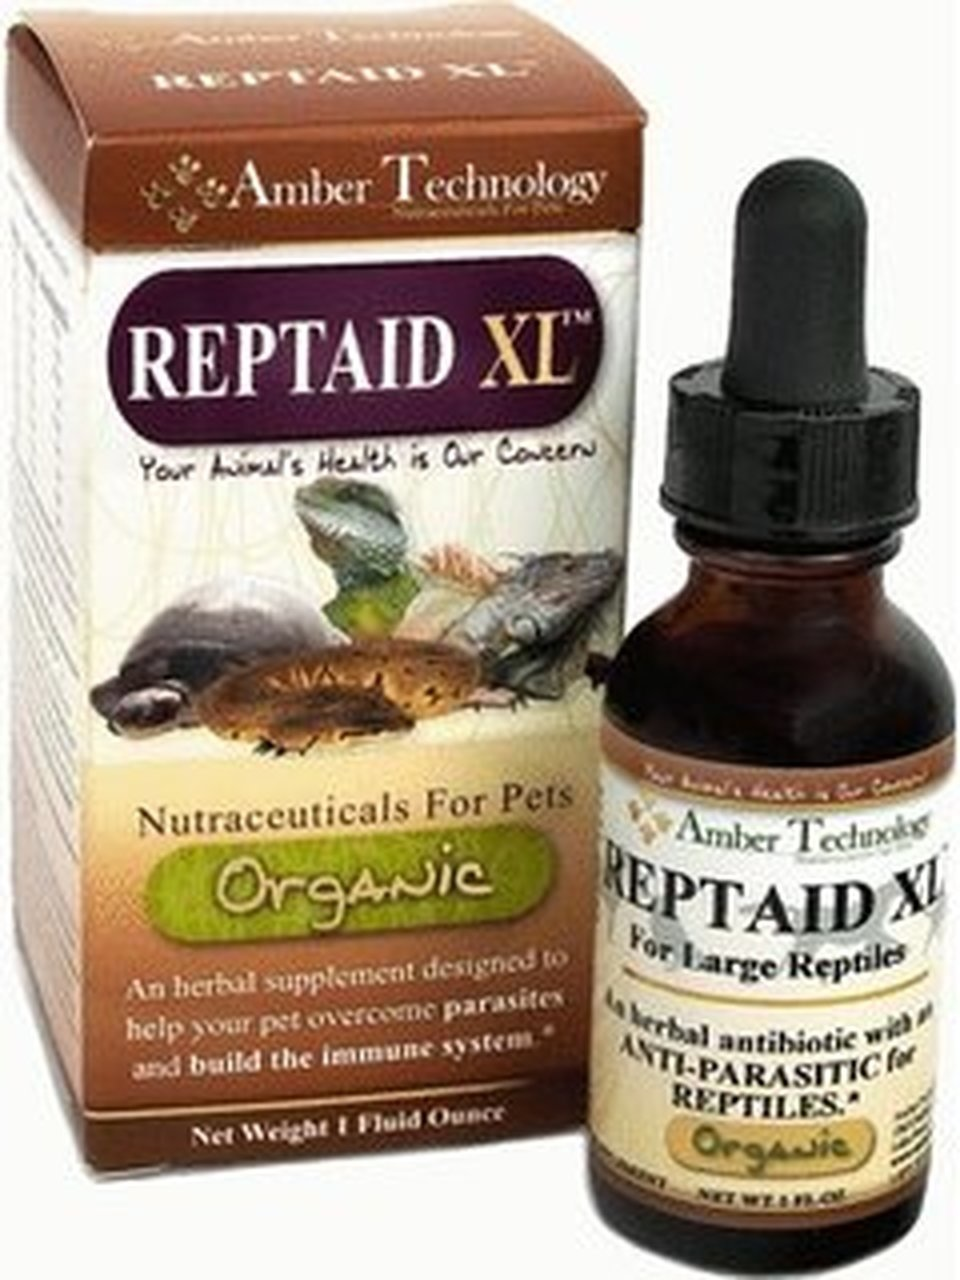 Amber Technology Reptaid XL Immune Support for Reptiles 1 oz